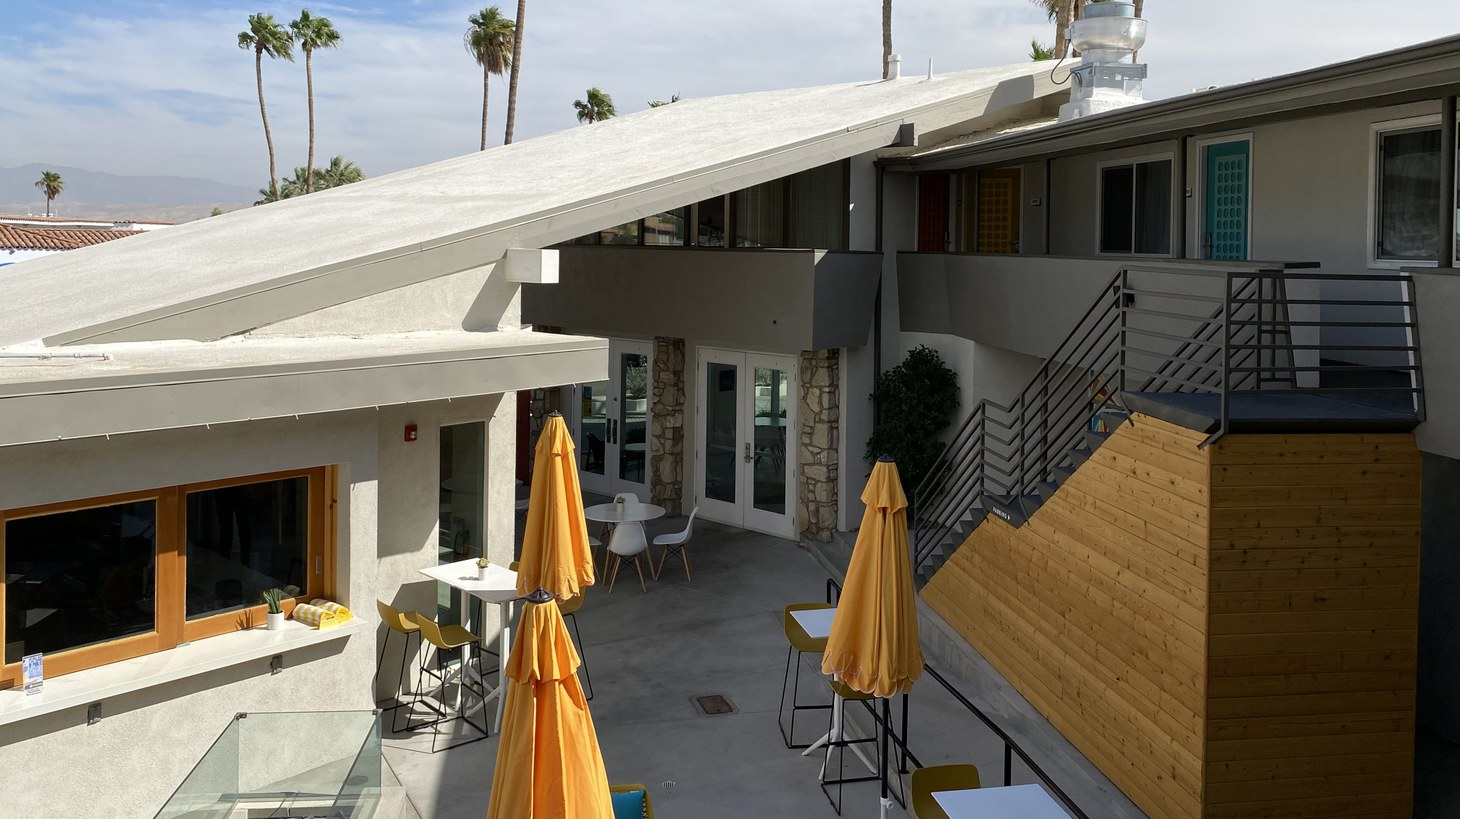 With its warm desert air and sleek mid-century architecture, Palm Springs has been a getaway for generations. Coronavirus doesn't seem to be tarnishing its reputation for sun, fun, and escape.